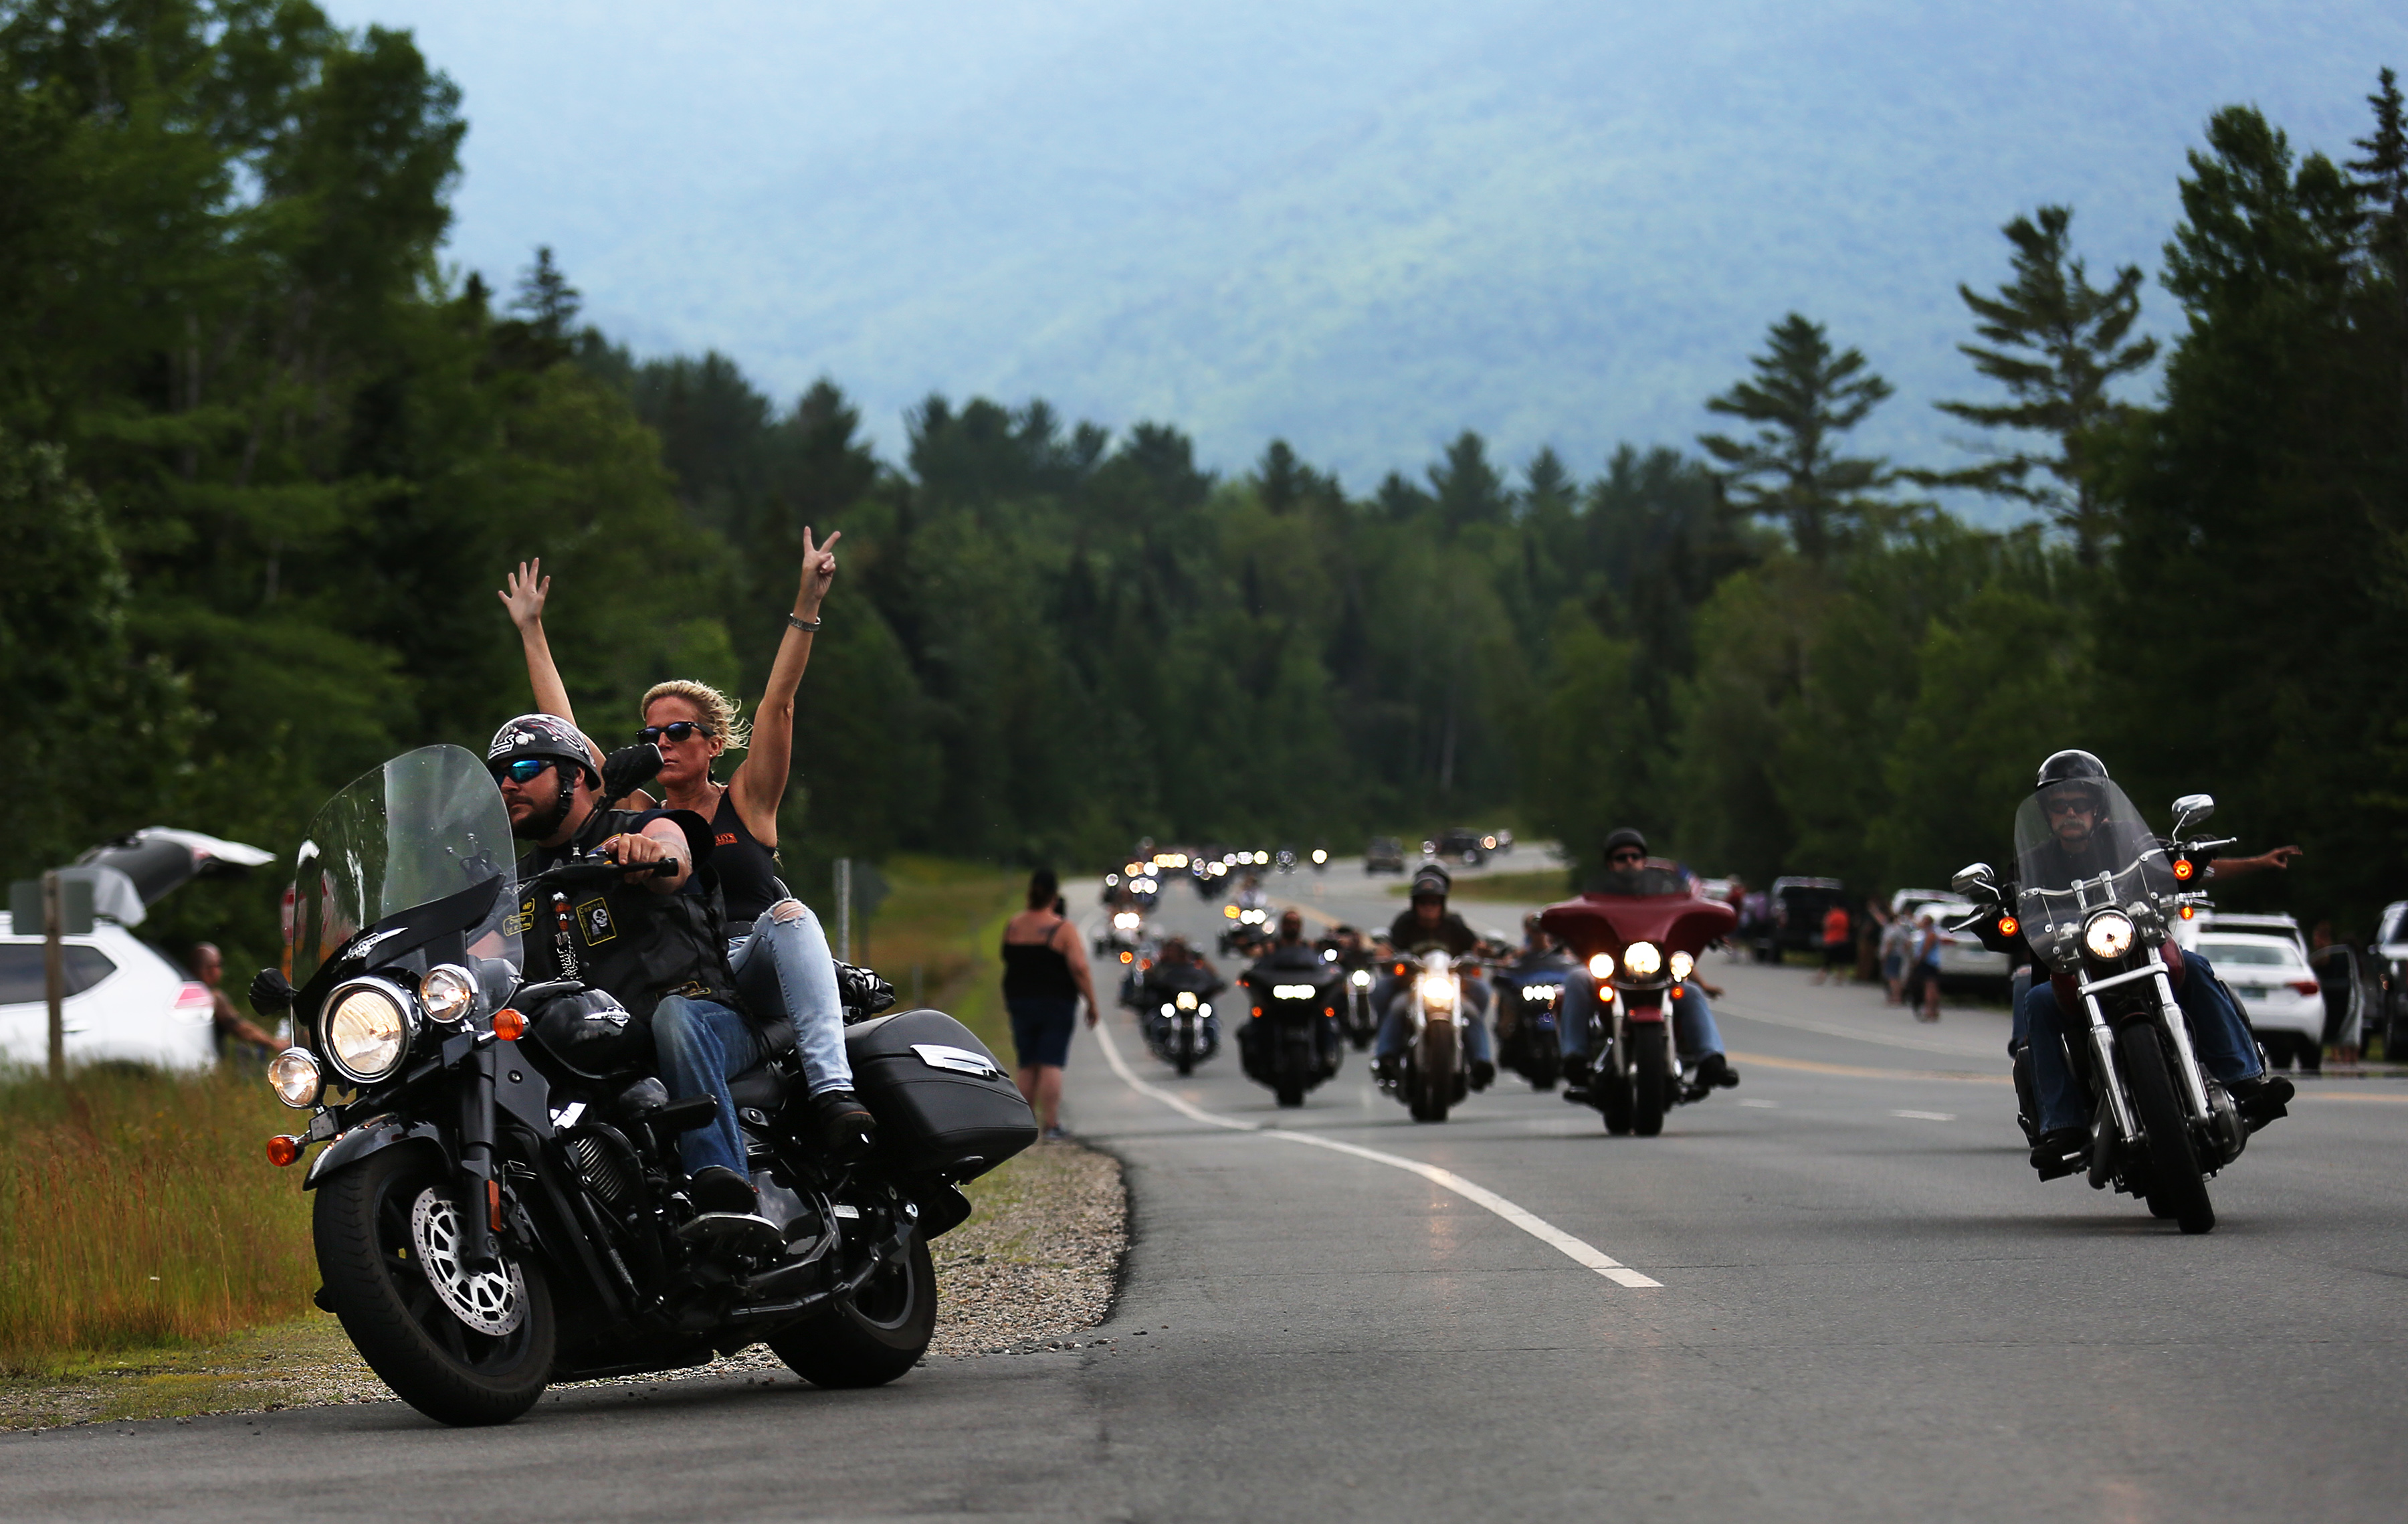 We are family': Bikers pay tribute to victims of deadly N H